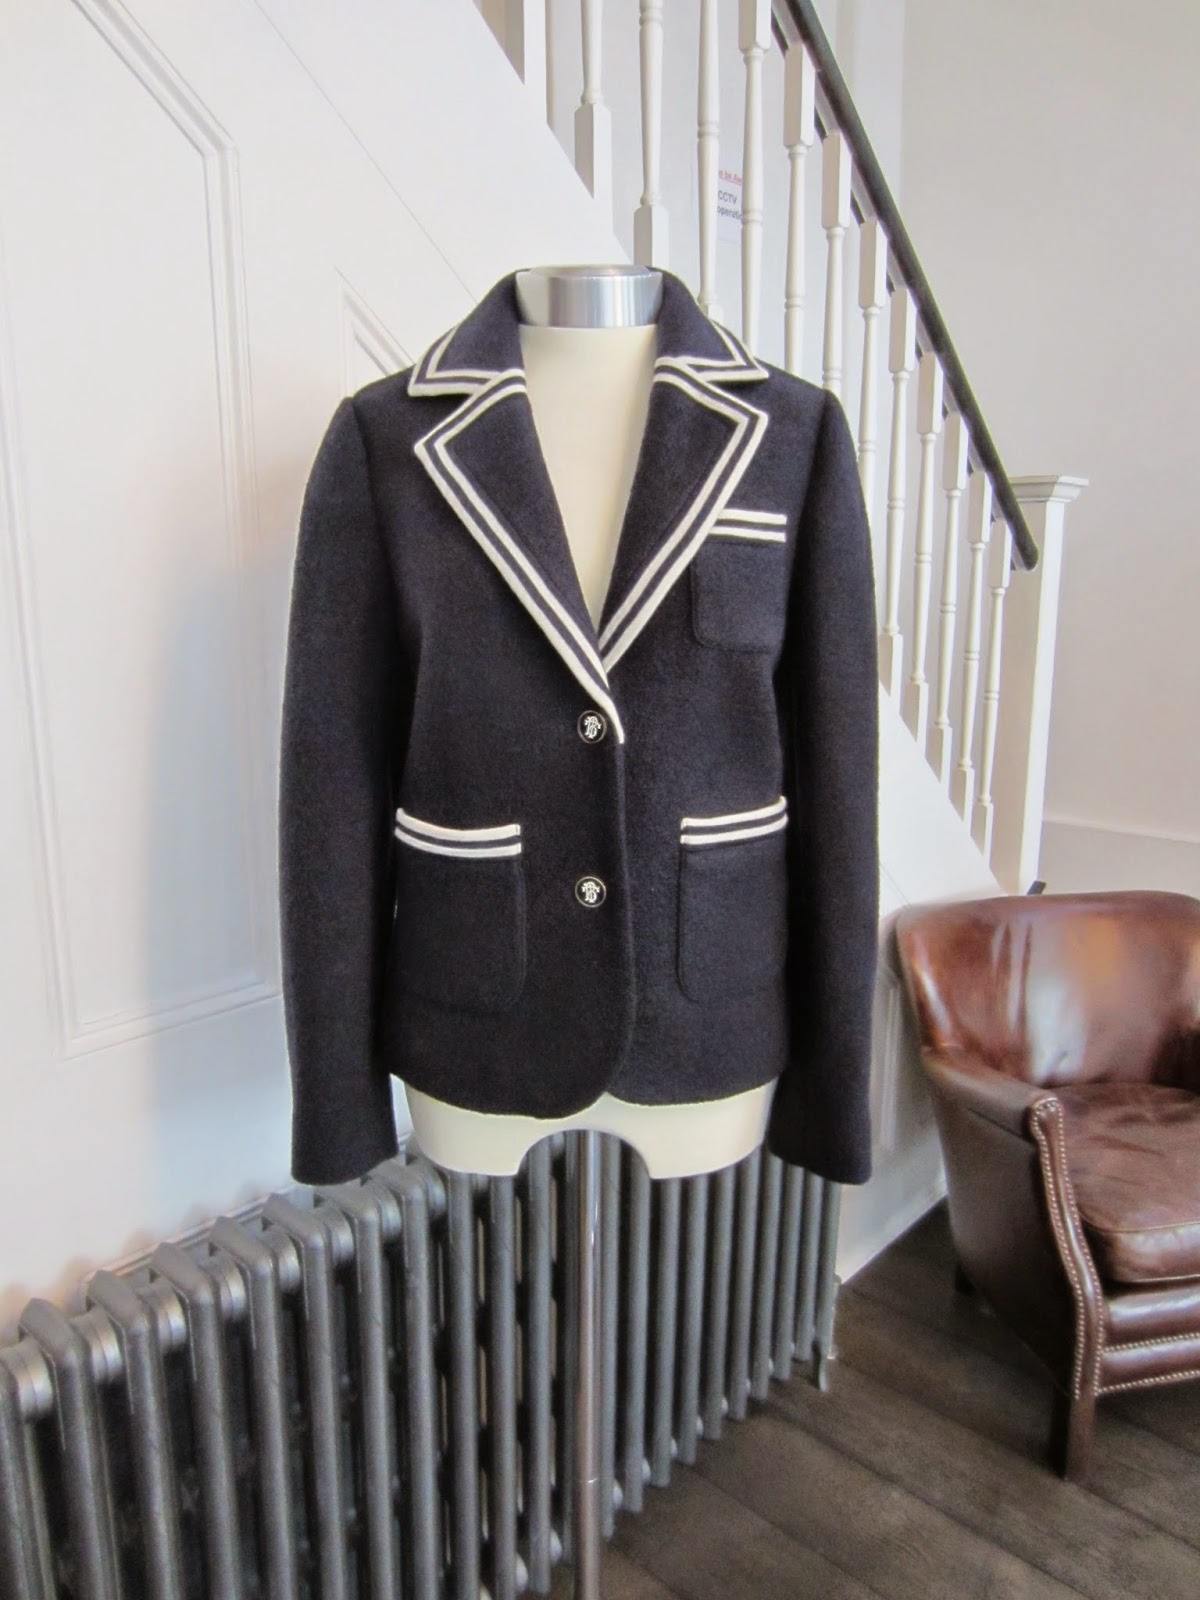 Tory Burch Navy Wool Amara Blazer with White Trim